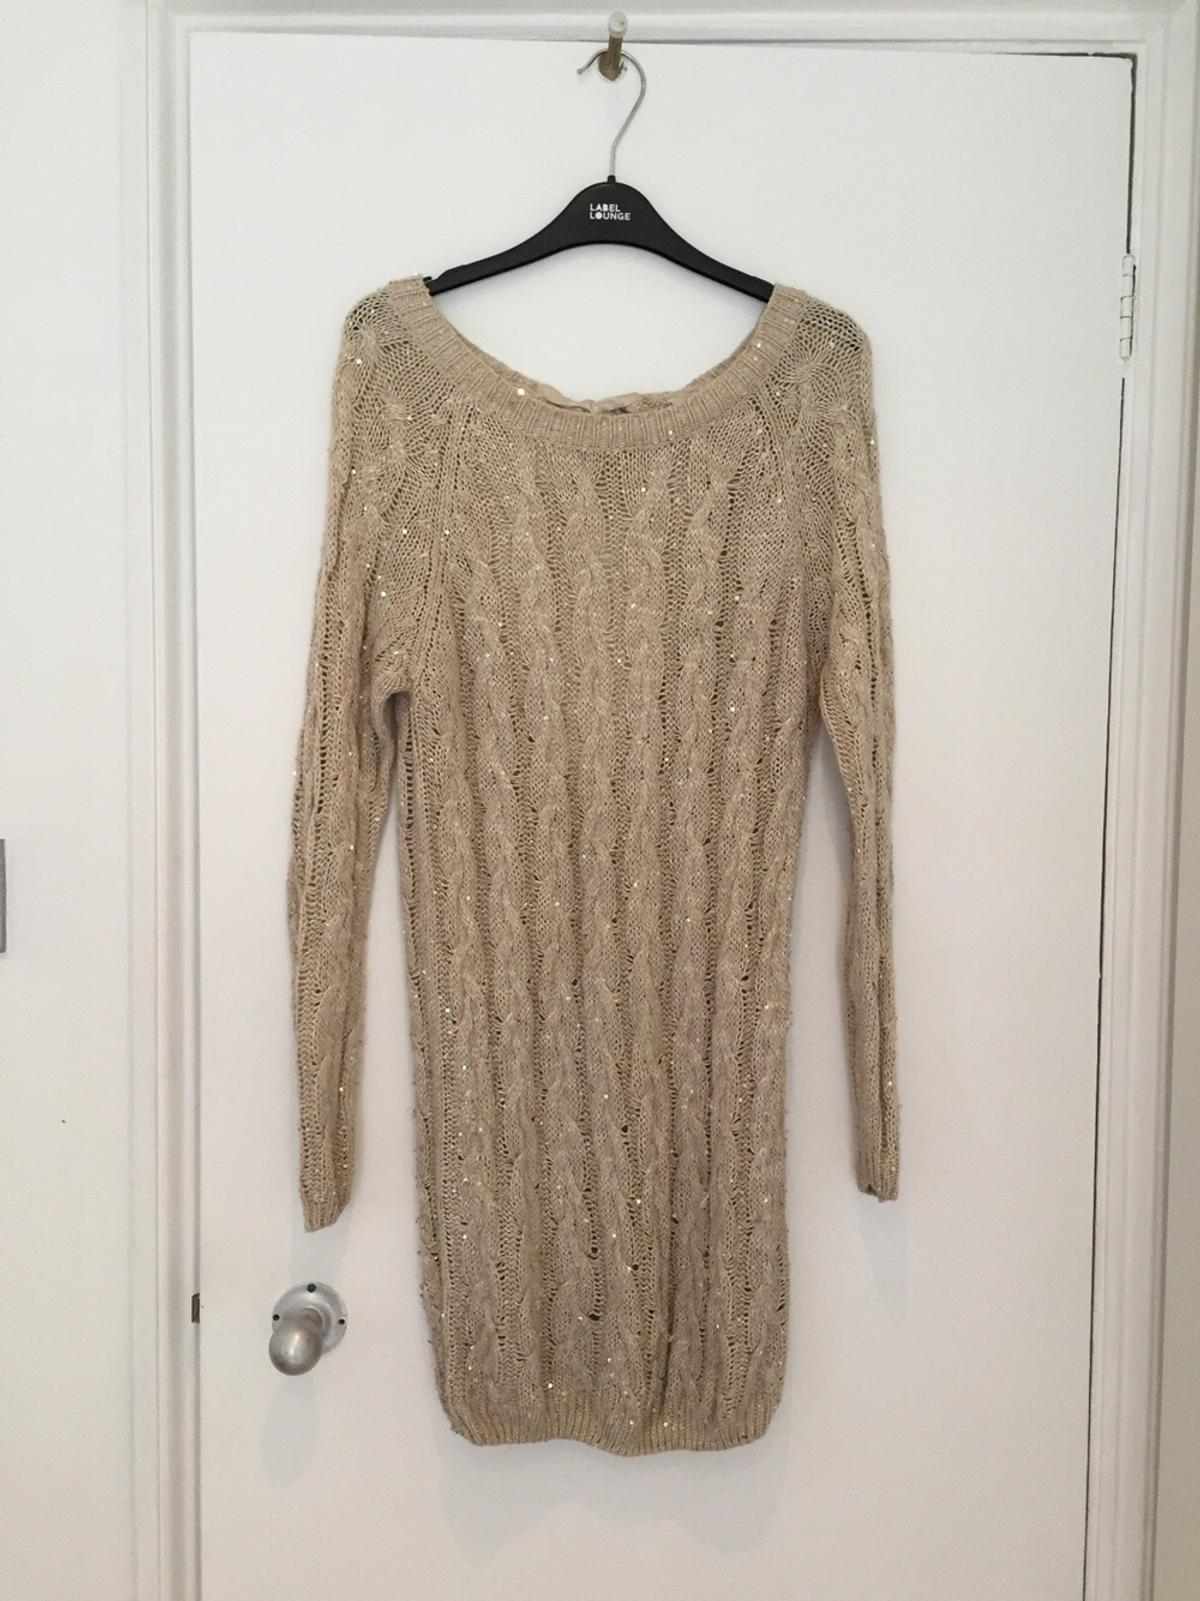 on sale shades of color brilliancy Gold oversized New Look jumper.